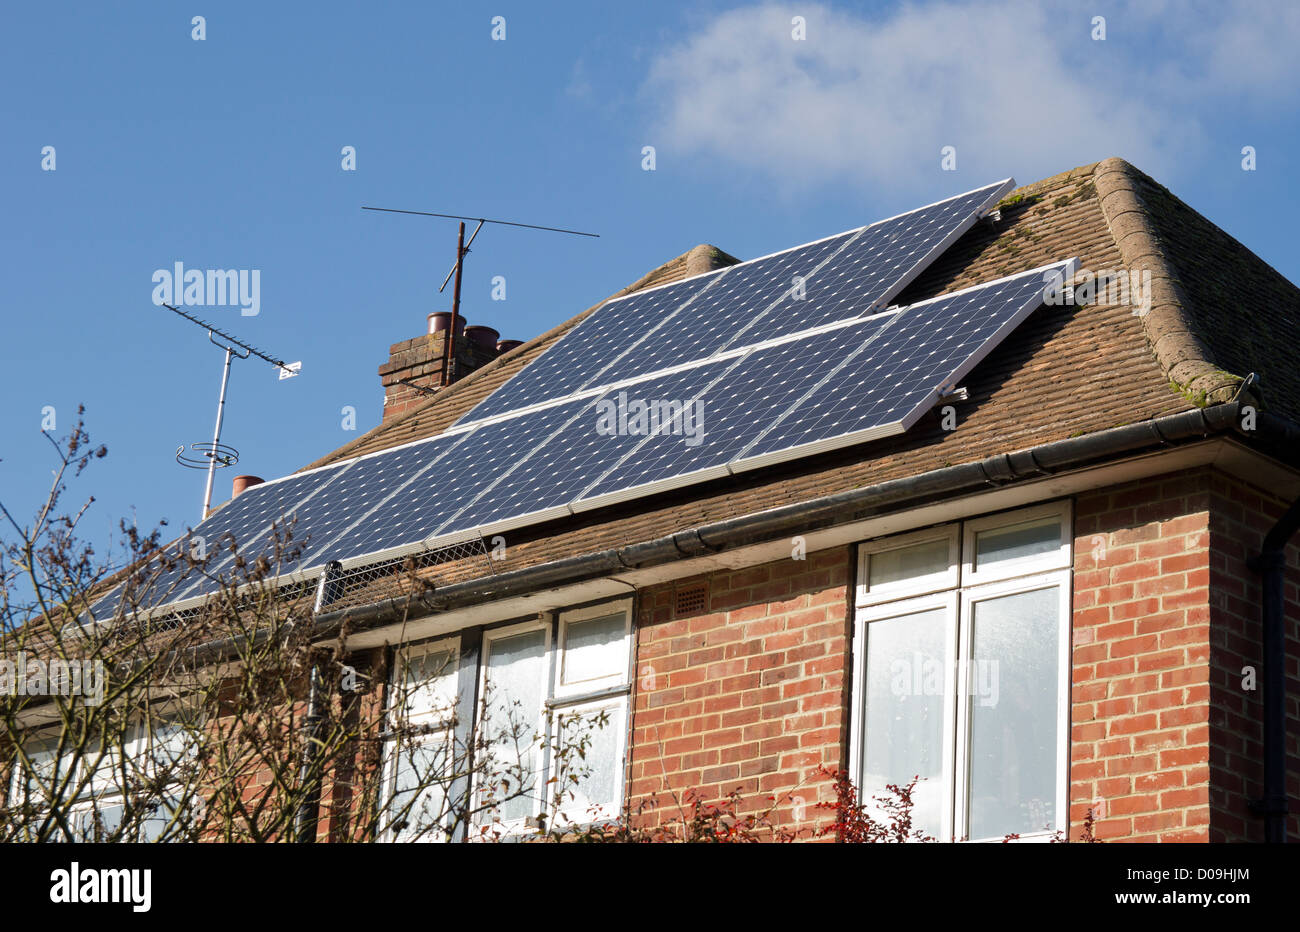 Solar Panels on modern council house roof. - Stock Image